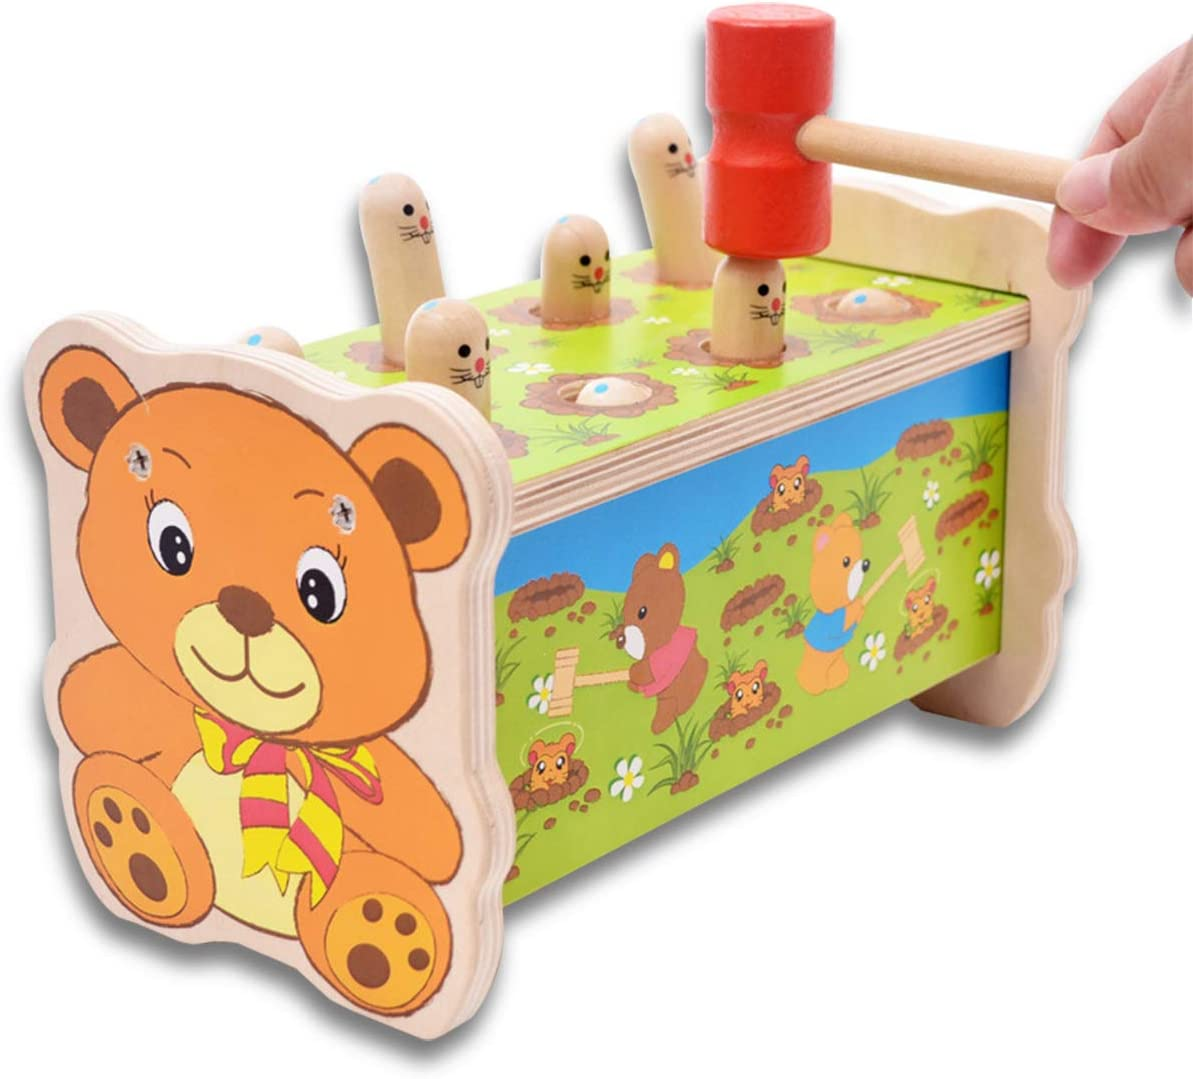 KAILUN Wooden Hammer San Diego Mall Toys for 1 2 Year 2021 autumn and winter new in Along 3 A Pull Old